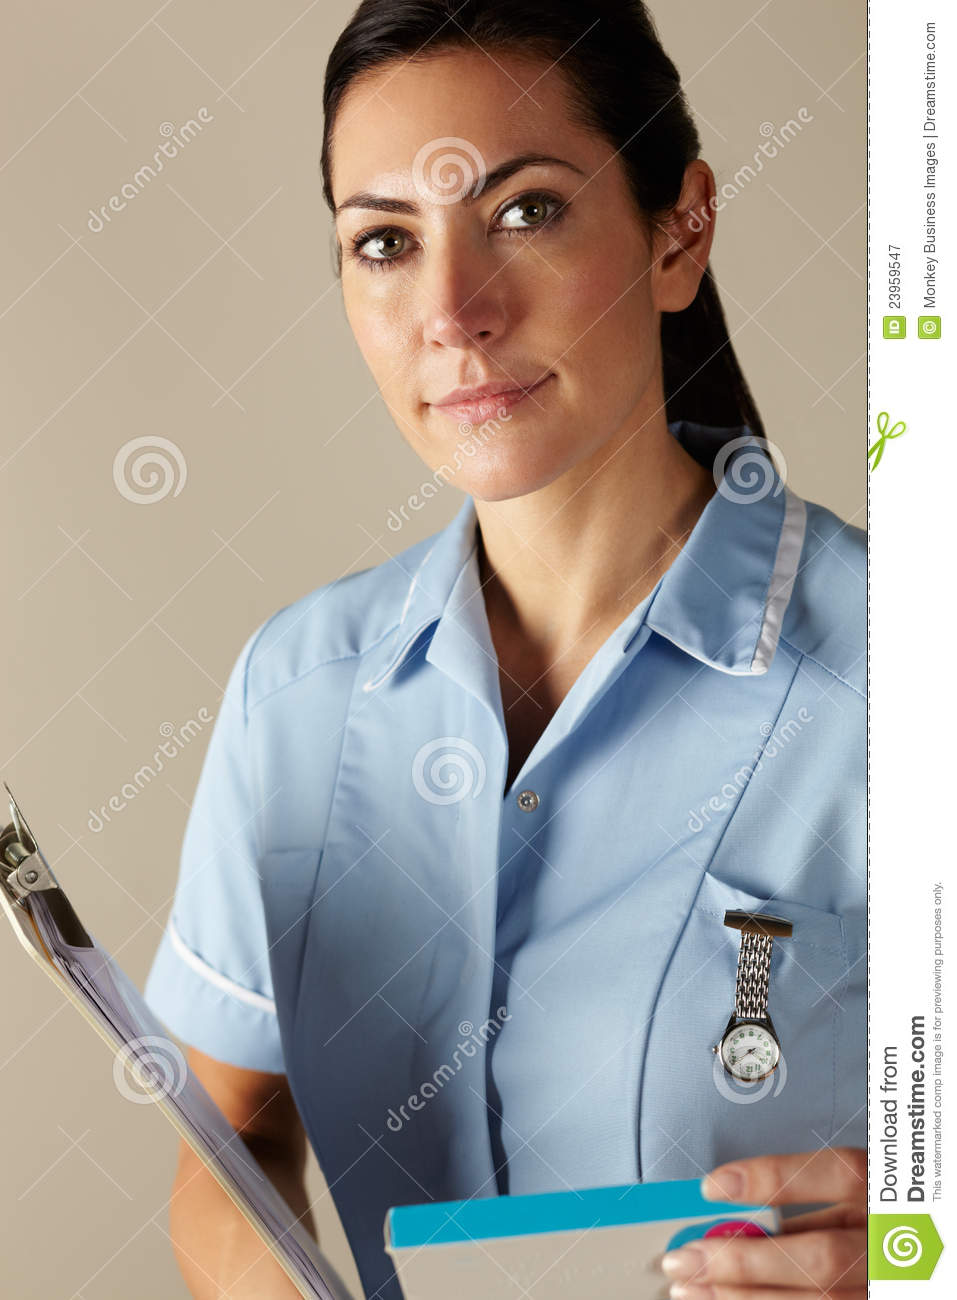 uk nurse holding prescription drug pack royalty free stock